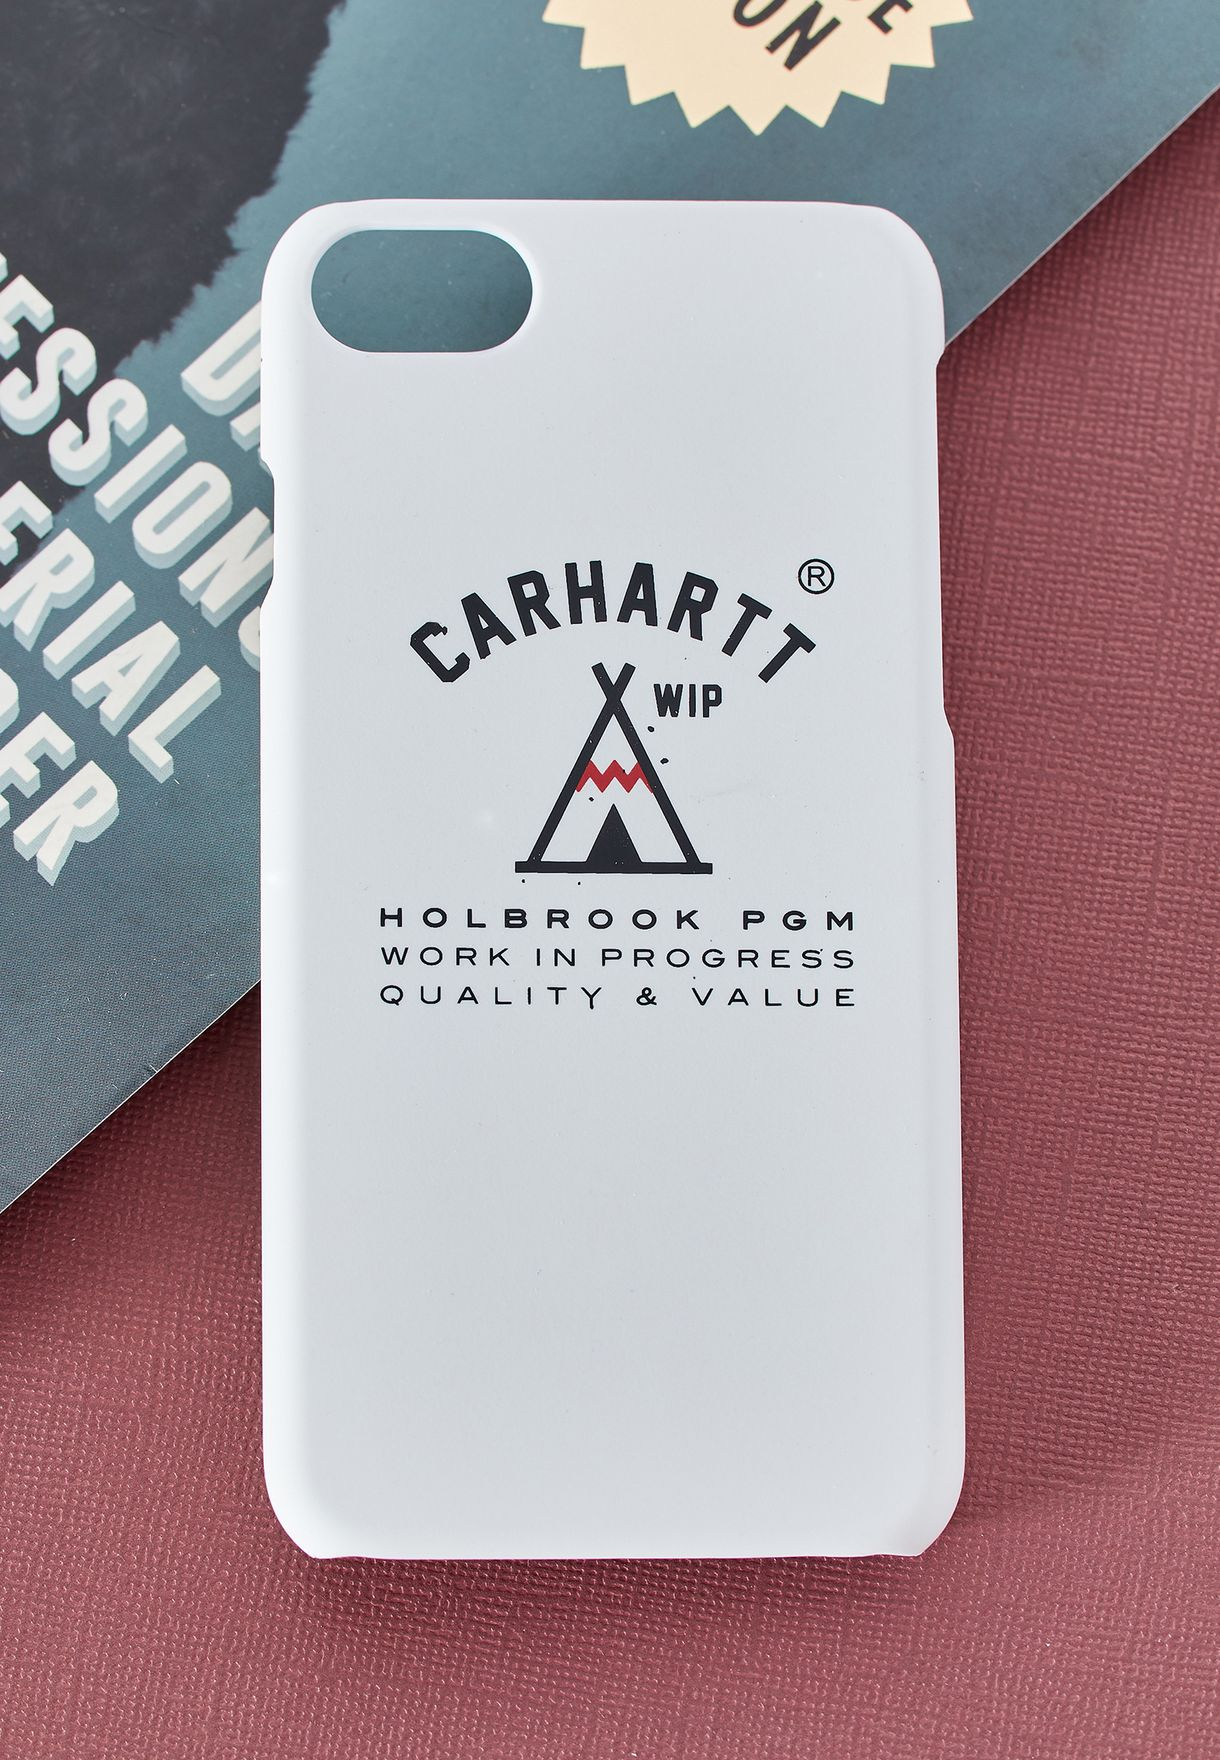 Holbrook iphone 6/7/8 Case